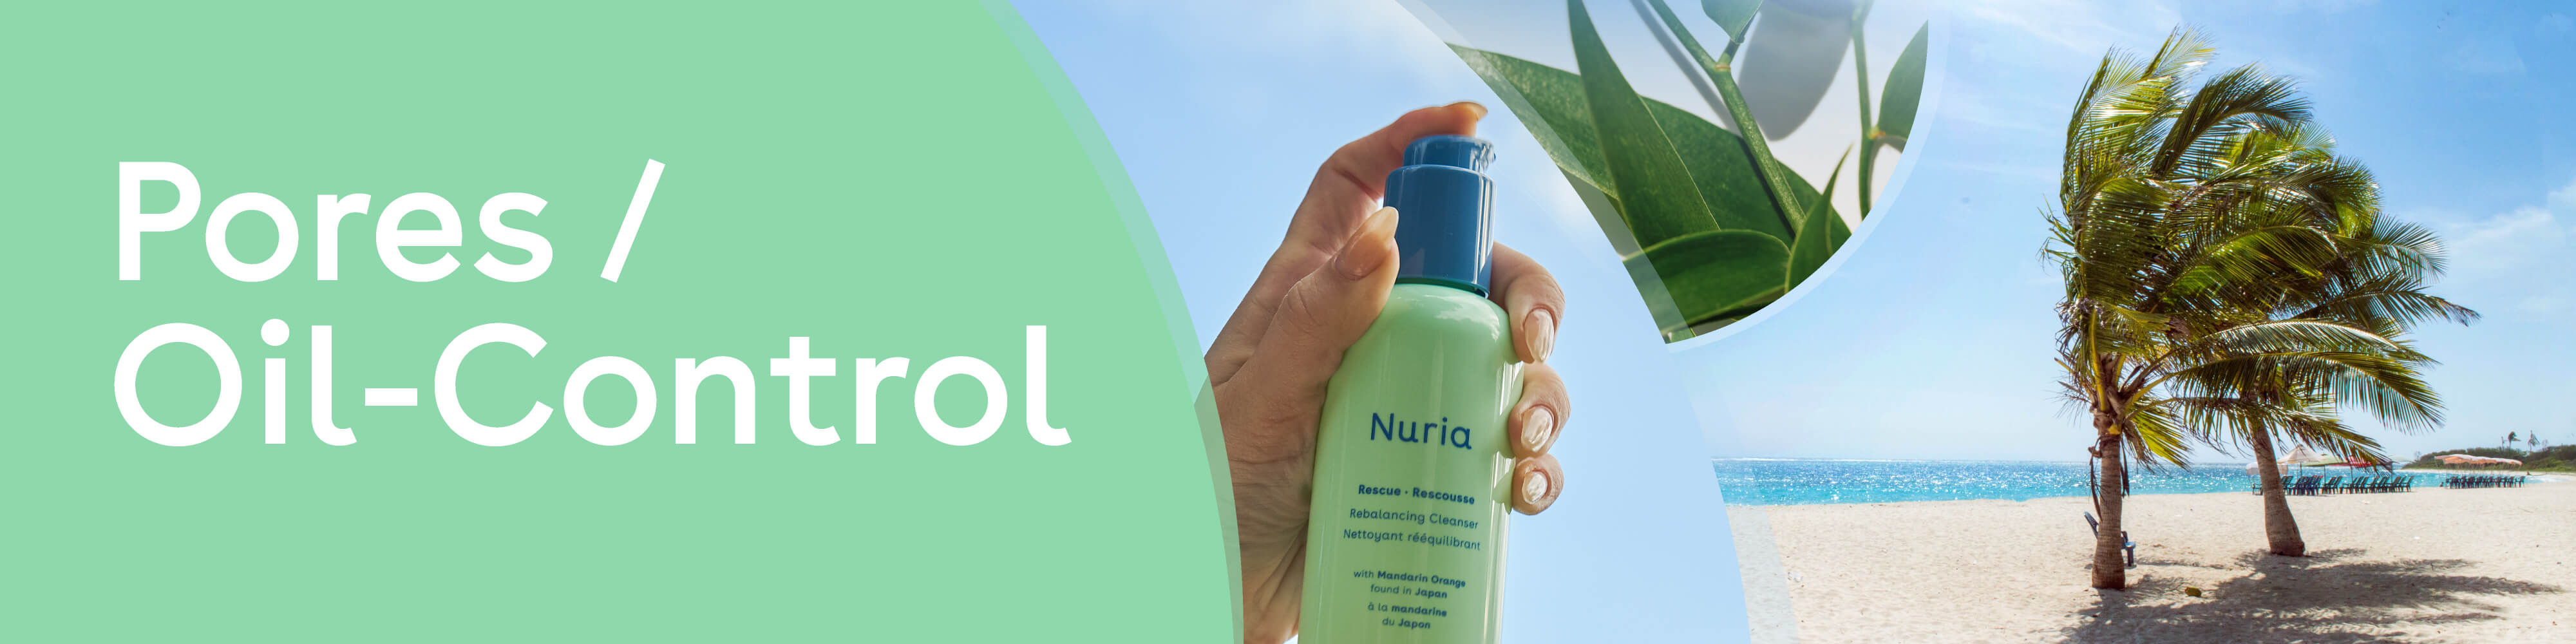 Pores / Oil Control - Nuria's products for your skin concerns